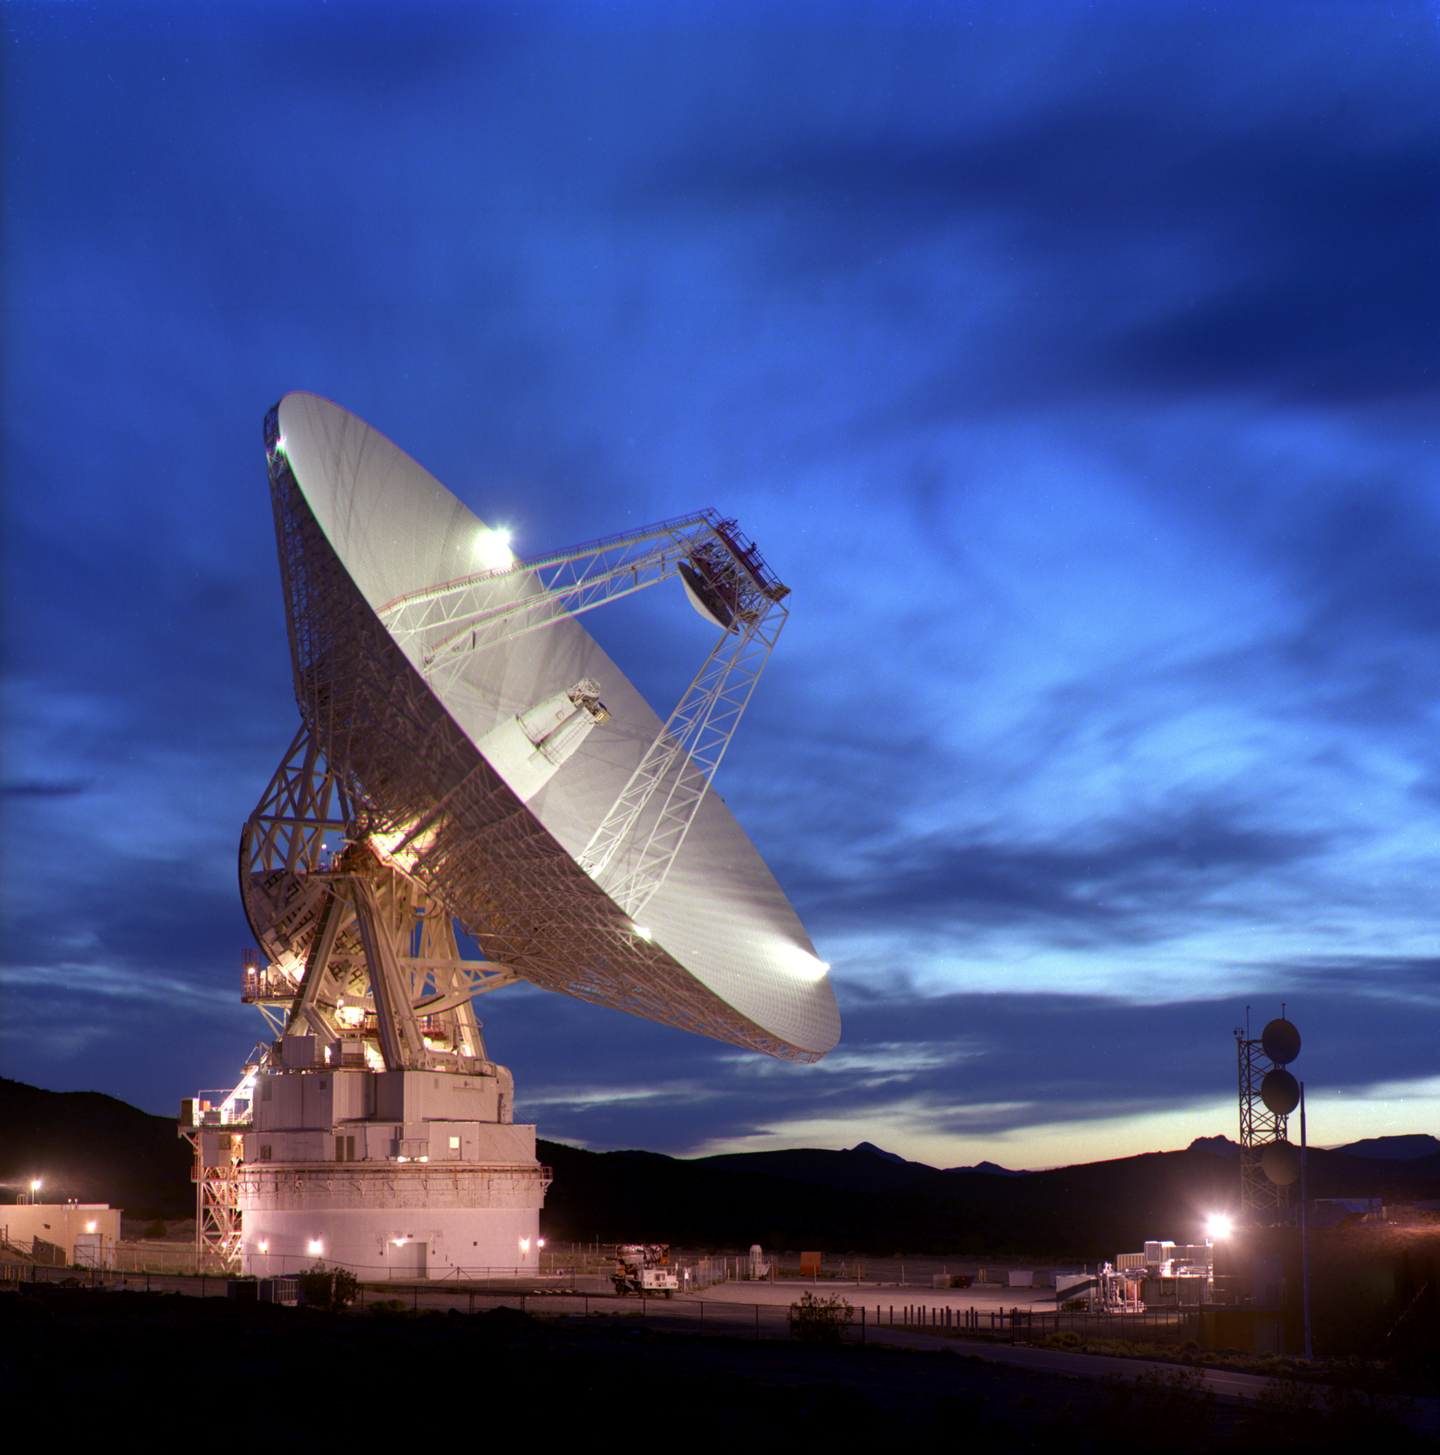 The 21-story DSS-14 dish in the Mojave Desert.